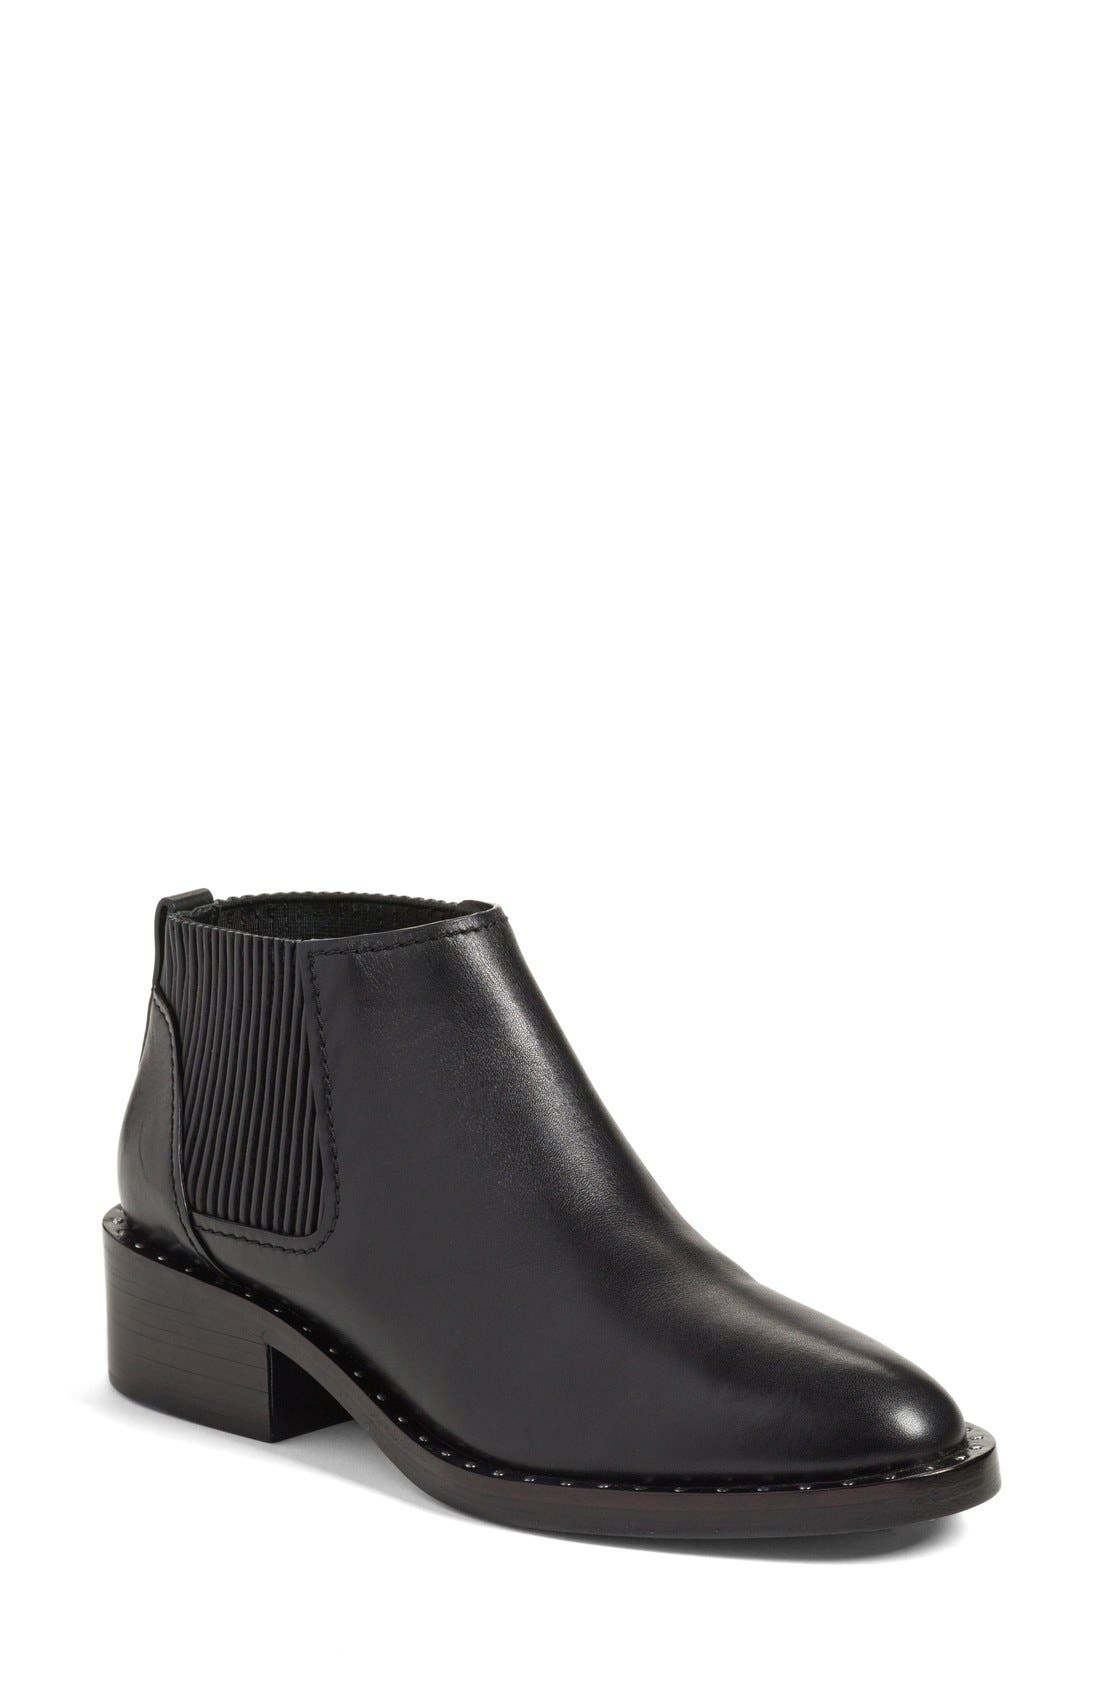 Alternate Image 1 Selected - 3.1 Phillip Lim 'Alexa' Bootie (Women)